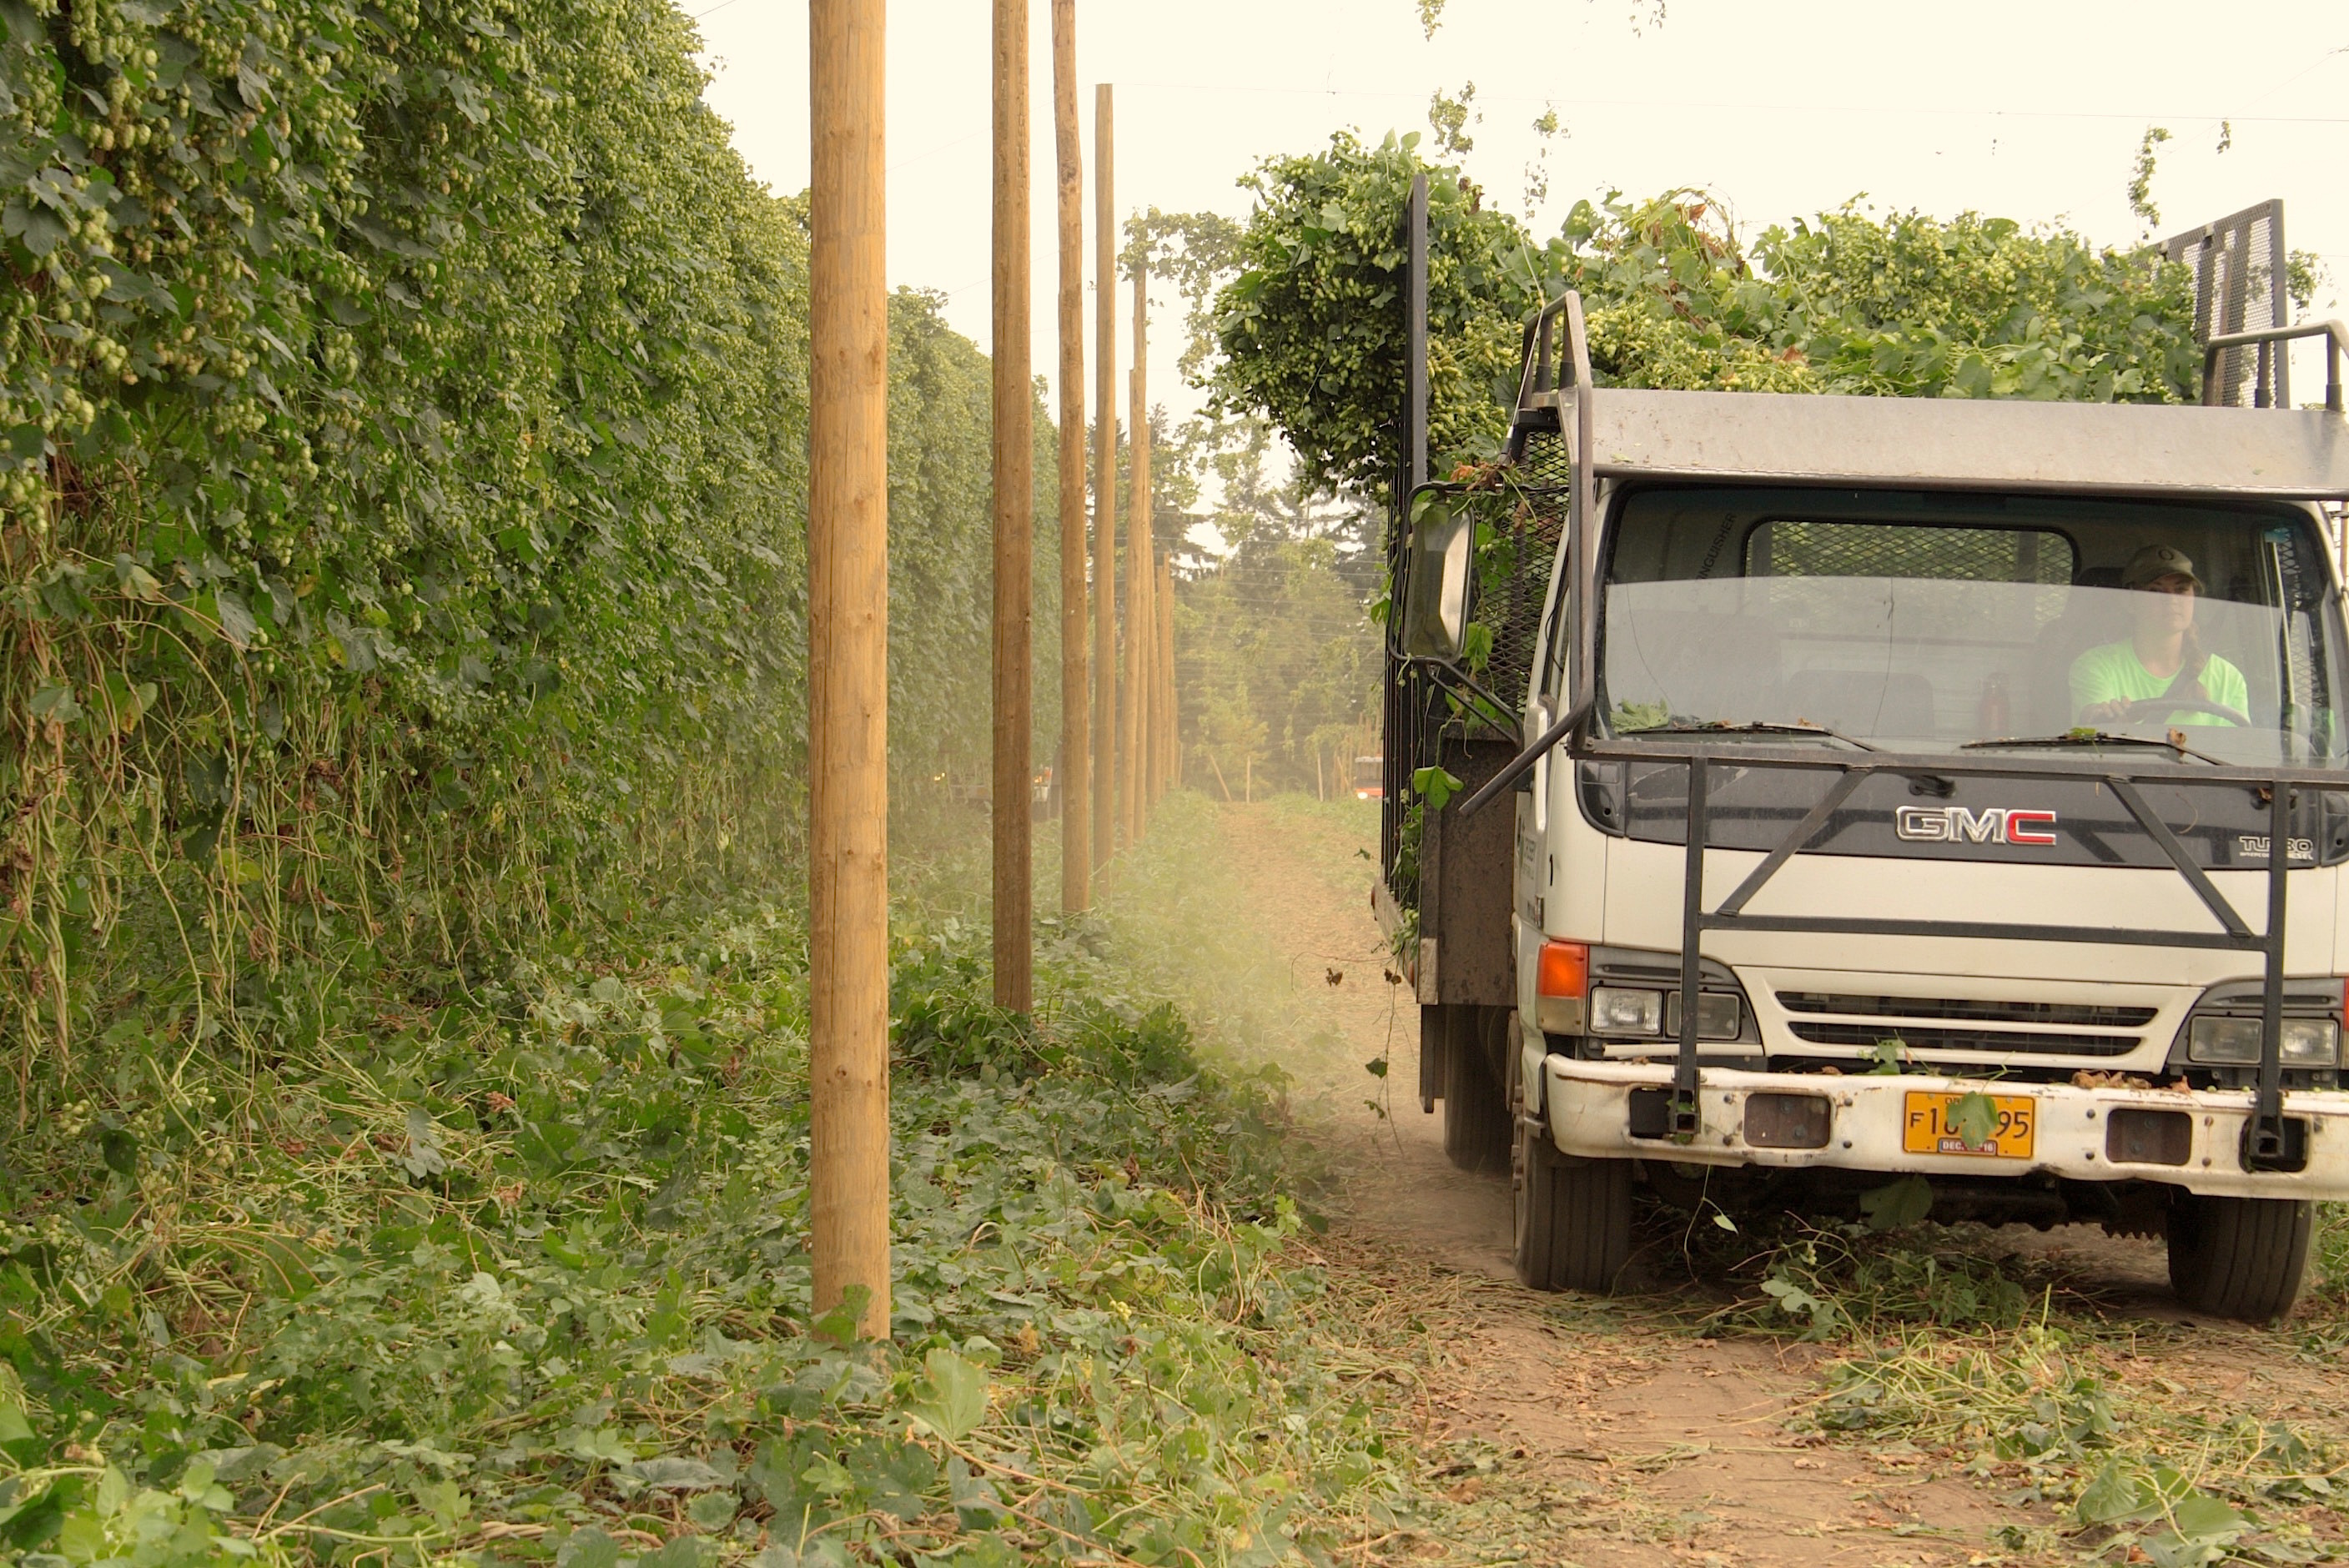 A-Crosby-Hop-Farm-truck-leaving-the-hop-yard-with-freshly-picked-Amarillo-Hops-during-the-2016-harvest.-photo-by-Ryan-Spencer-1